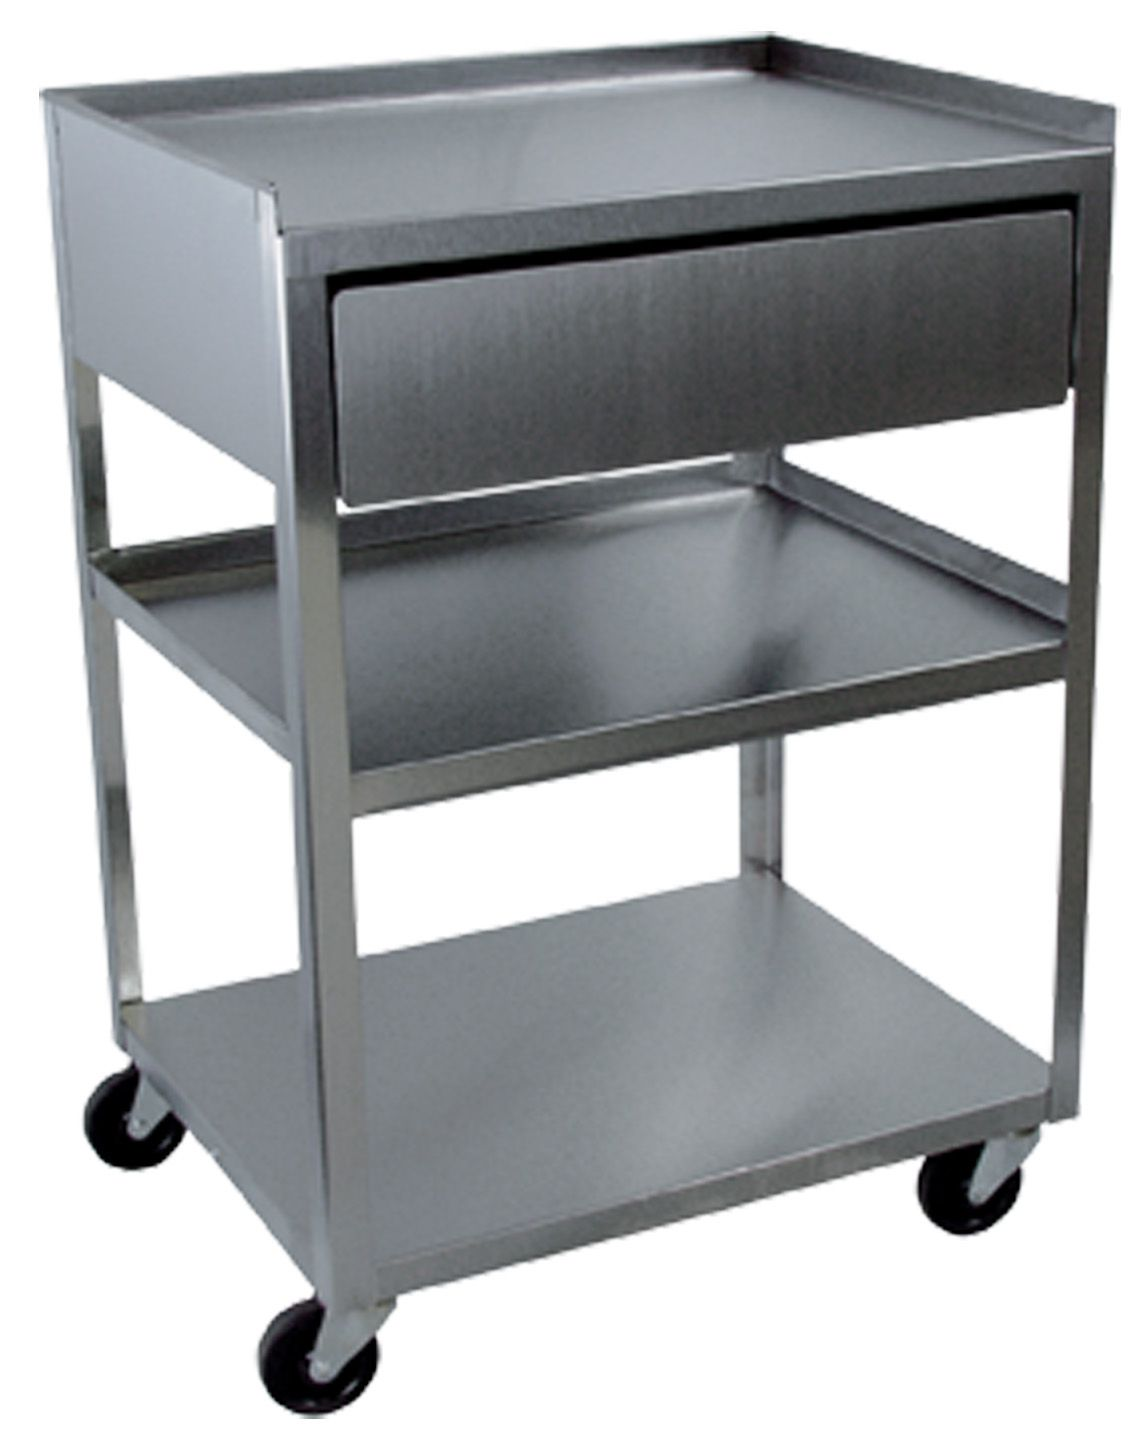 Buy Rolling Make Up Artist Bag With Seat: Buy Stainless Steel Rolling Cart- 3 Shelf With Drawer